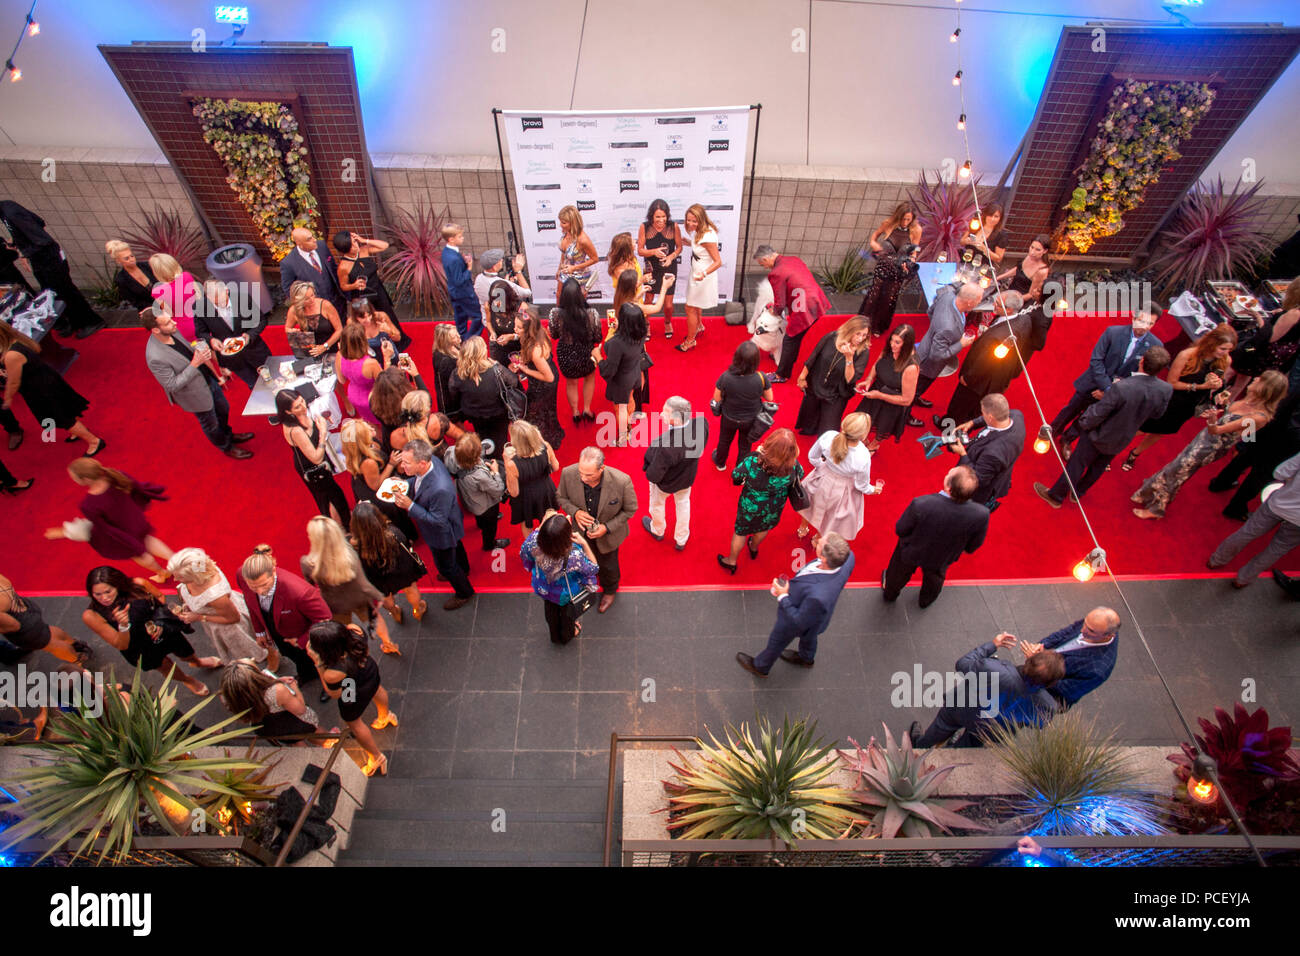 Cast members mix with invited guests at a party publicizing the reality TV show 'Real Estate Wars' in Laguna Beach, CA. In center is a background for people posing for photographers.  (Photo by Spencer Grant) - Stock Image